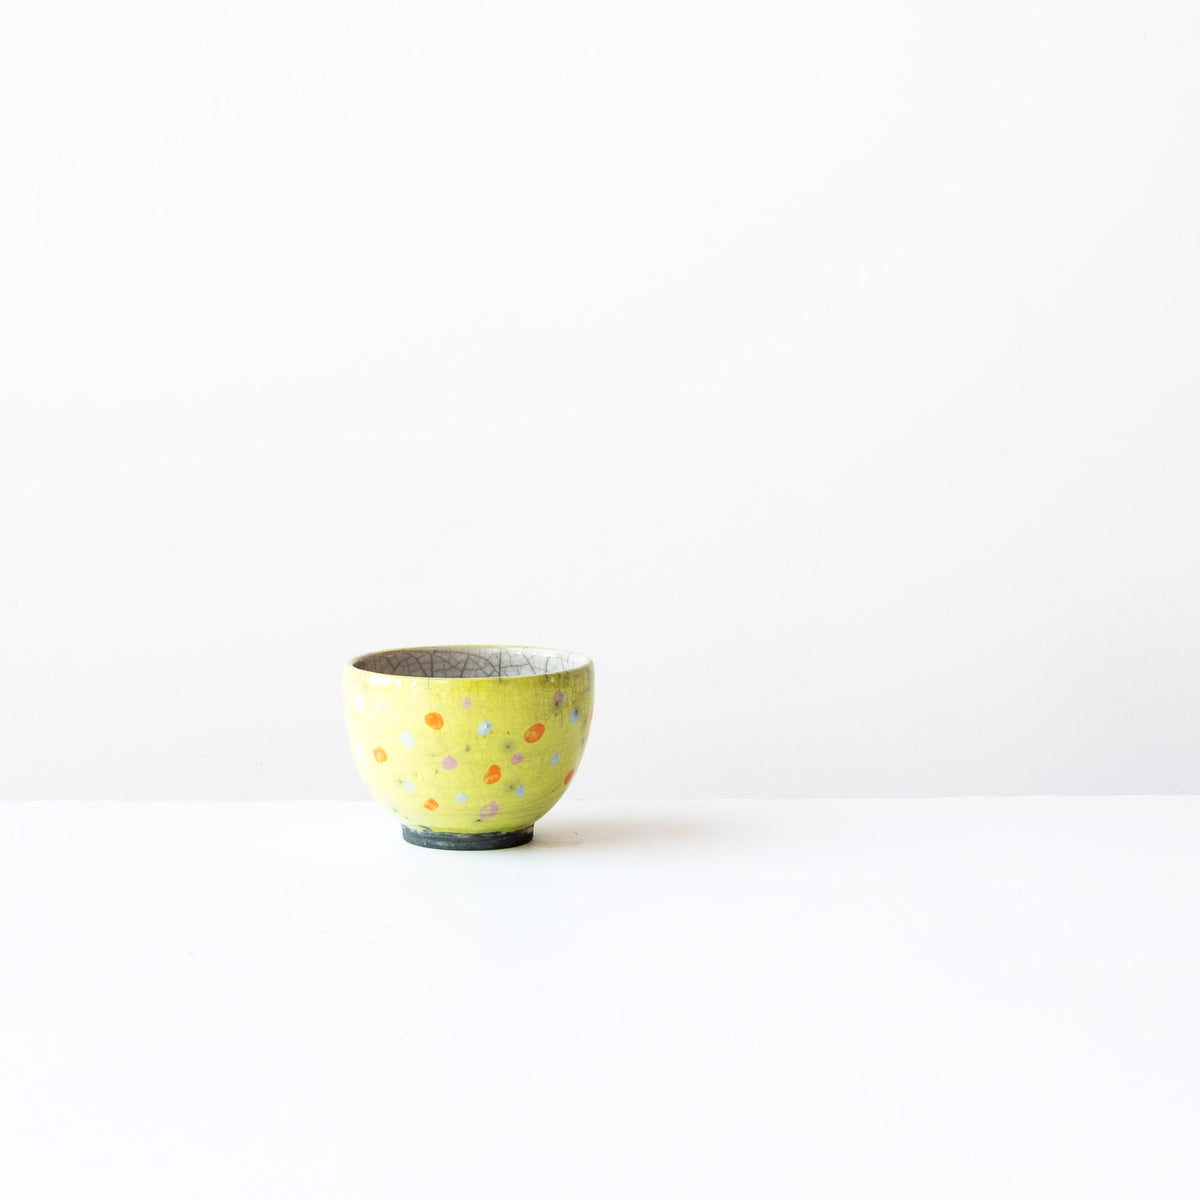 Lime Handmade Raku Tea Bowl with Dots - Sold by Chic & Basta